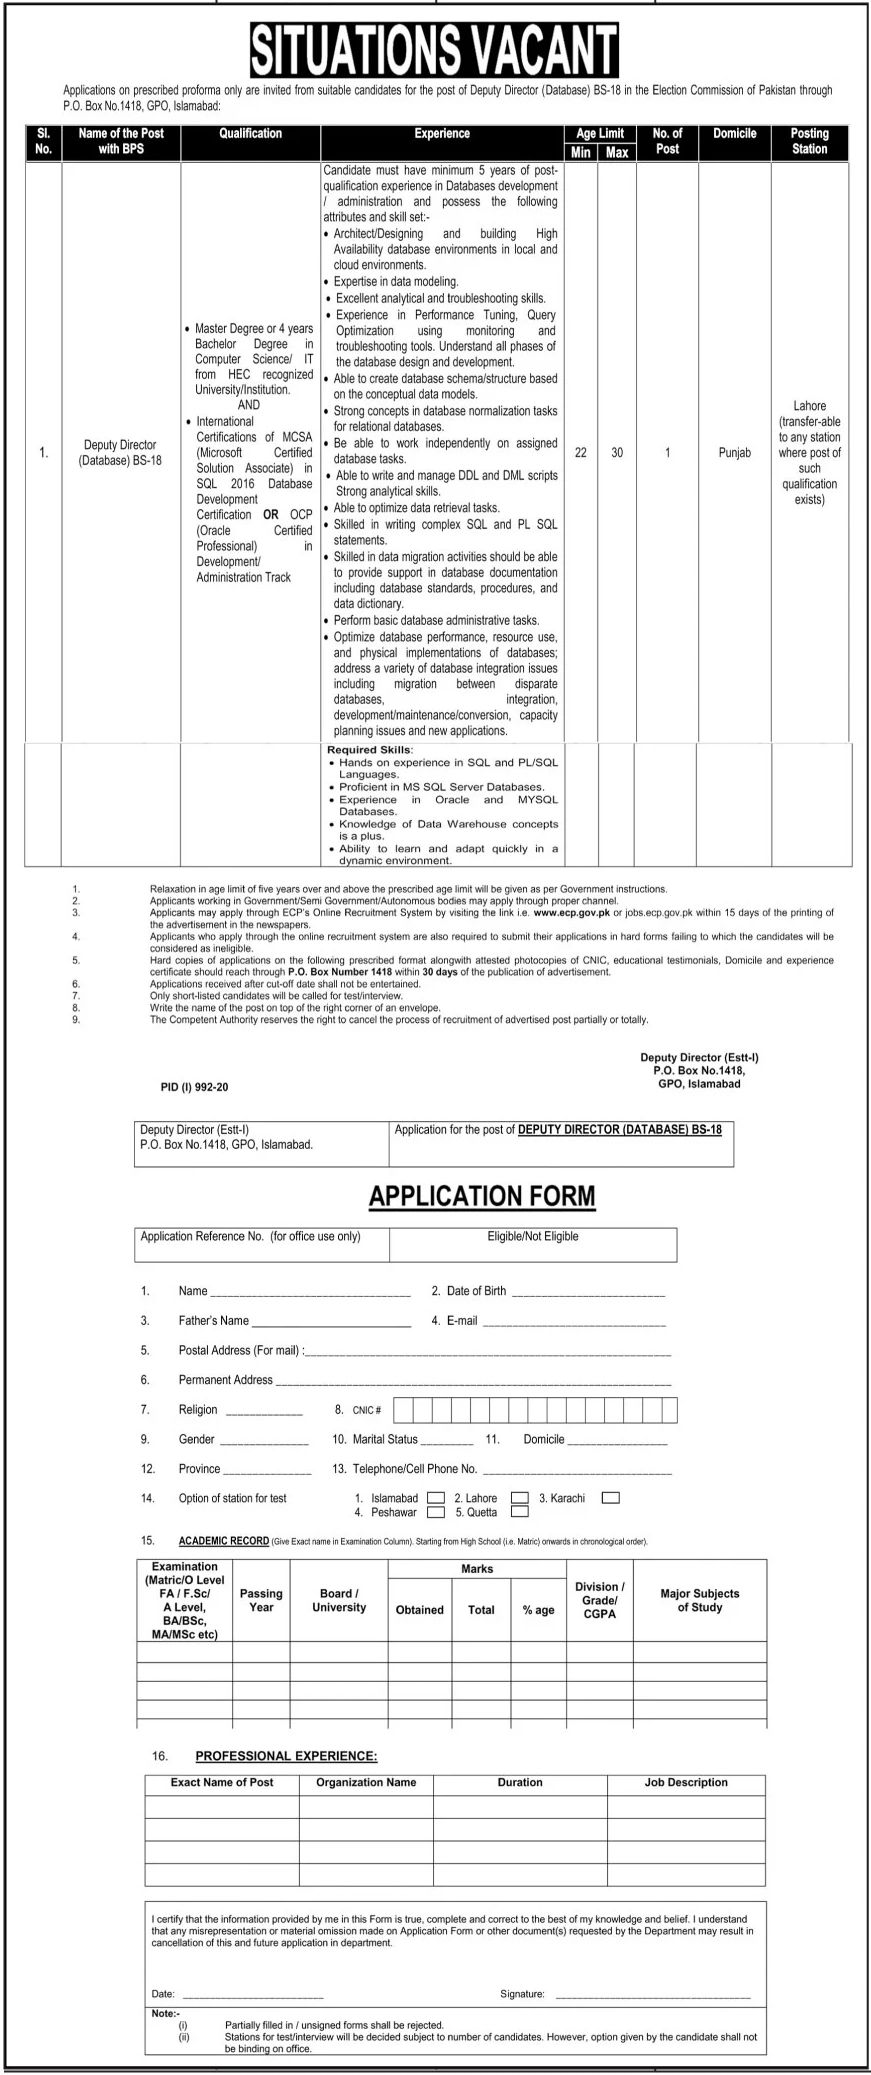 Election Commission of Pakistan Islamabad Jobs August 2020